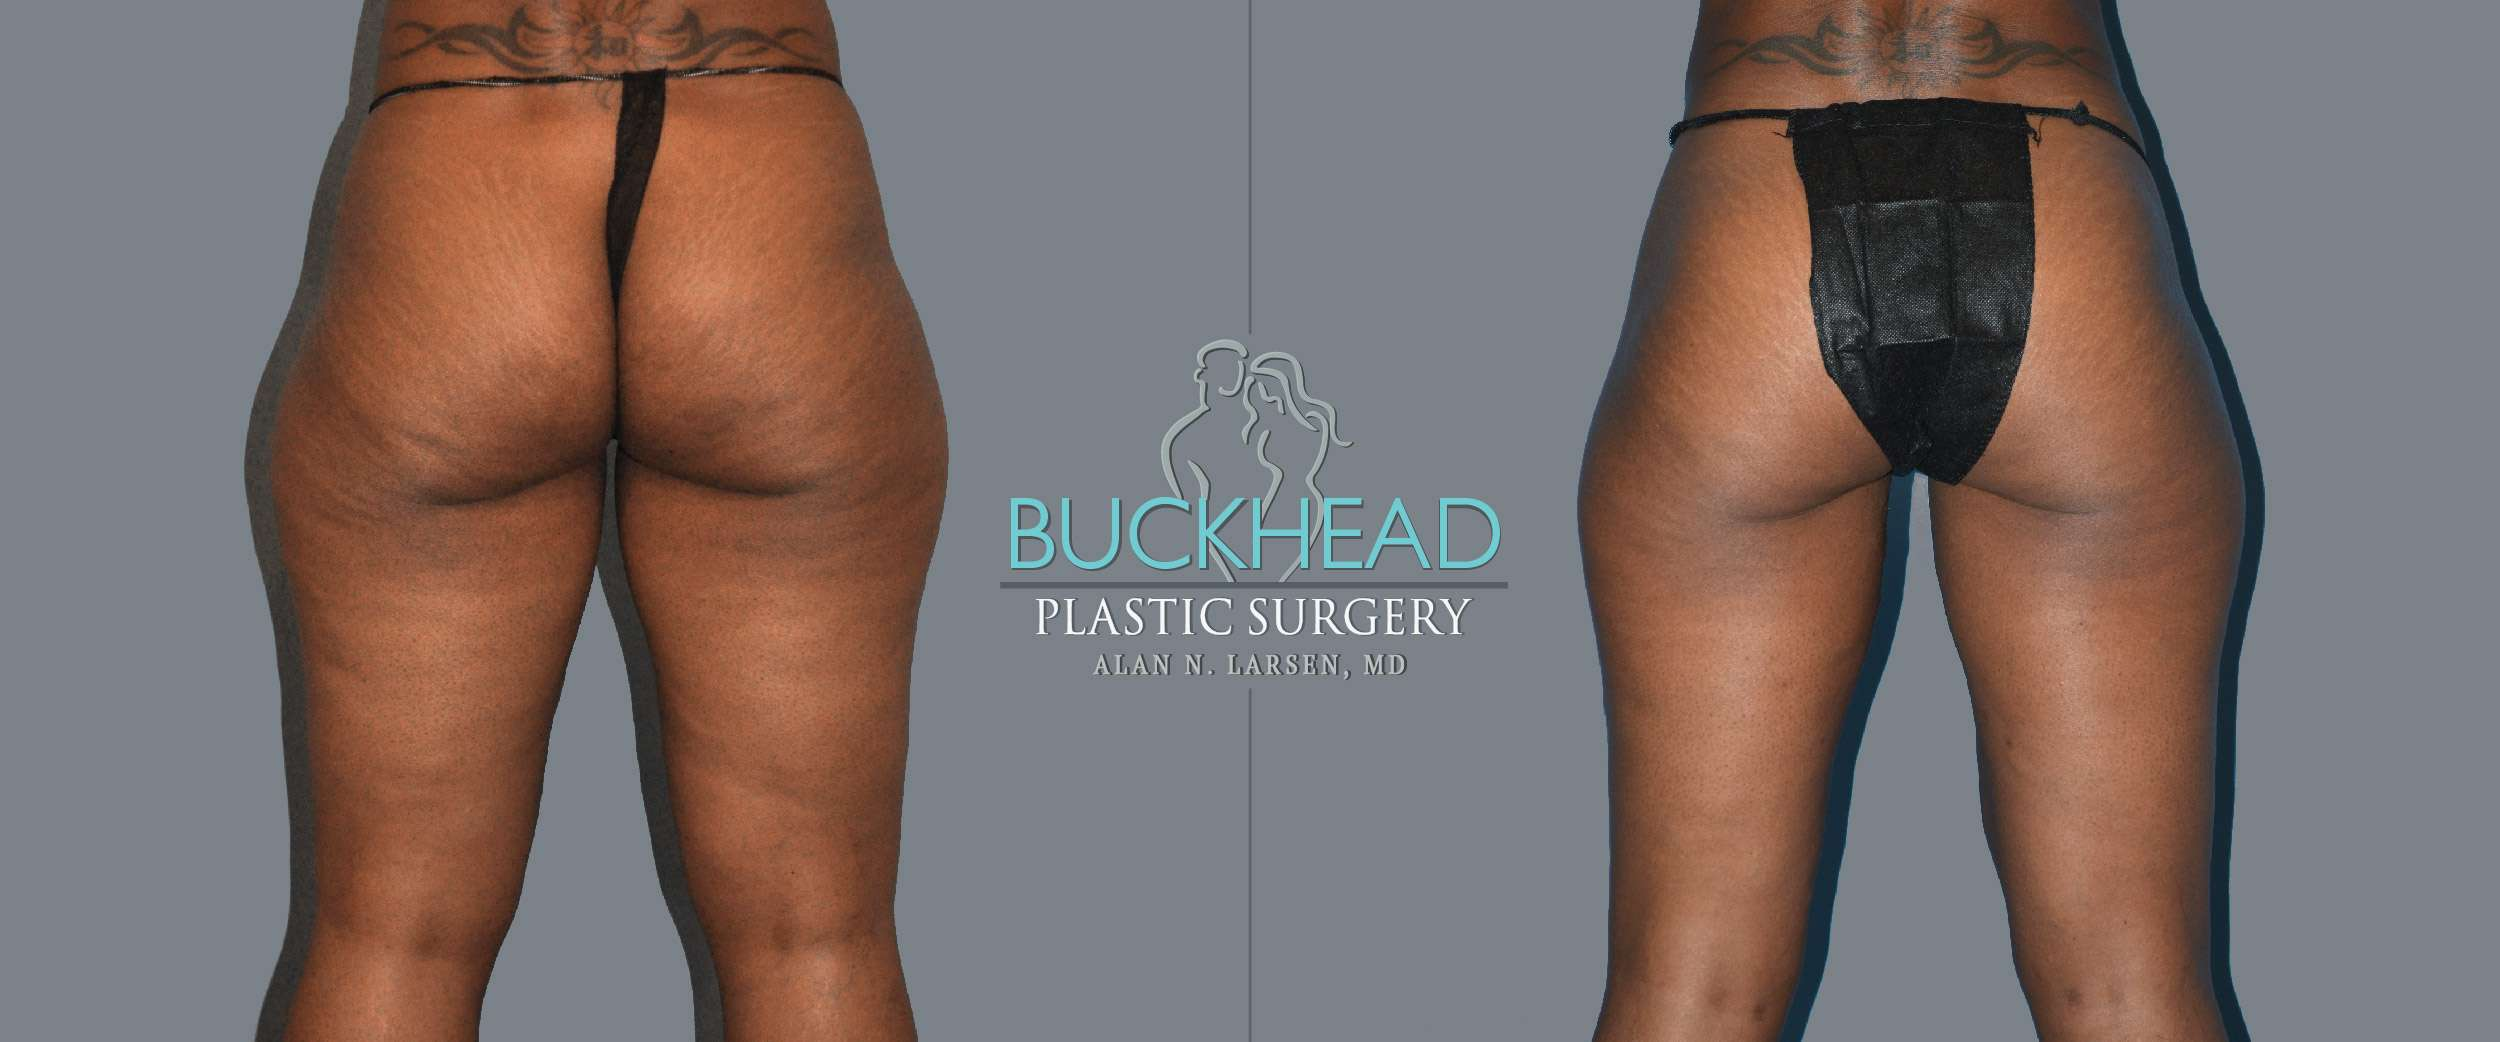 Before and After Photo Gallery | Liposuction - Thigh Front | Buckhead Plastic Surgery | Alan N. Larsen, MD | Board-Certified Plastic Surgeon | Atlanta GA